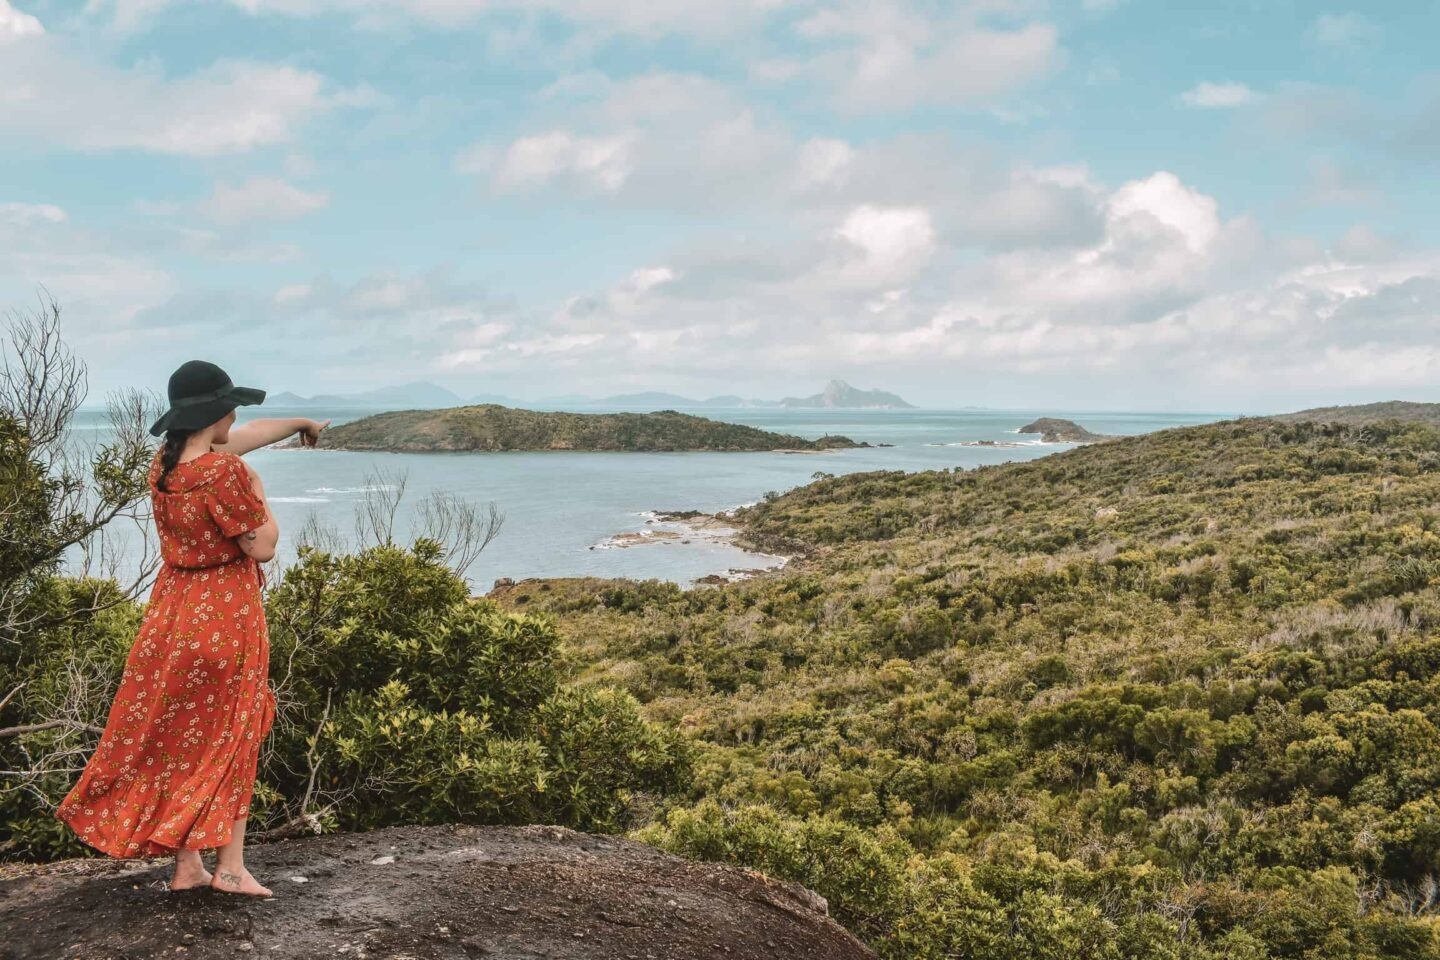 Travelling Australia can be cheap, comfortable, and easy if you know how to do it right! Greyhound buses is the ultimate way to travel Australia and tick off your Australian bucket list. #travelaustralia #budgettravel